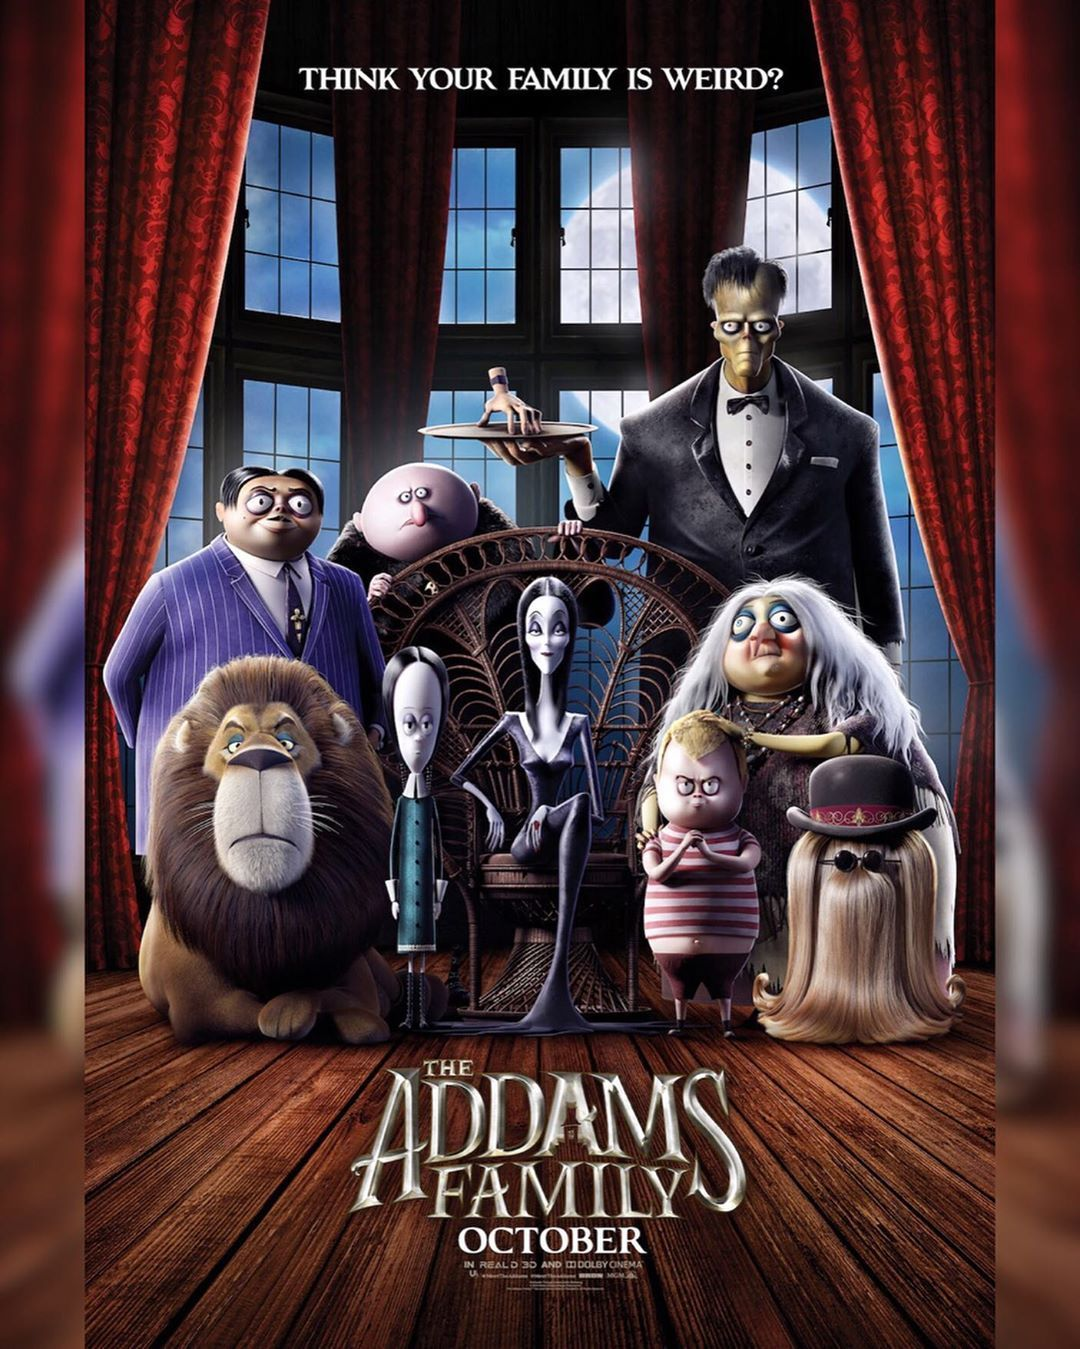 The addams family 2019 spoiler free review swipe to